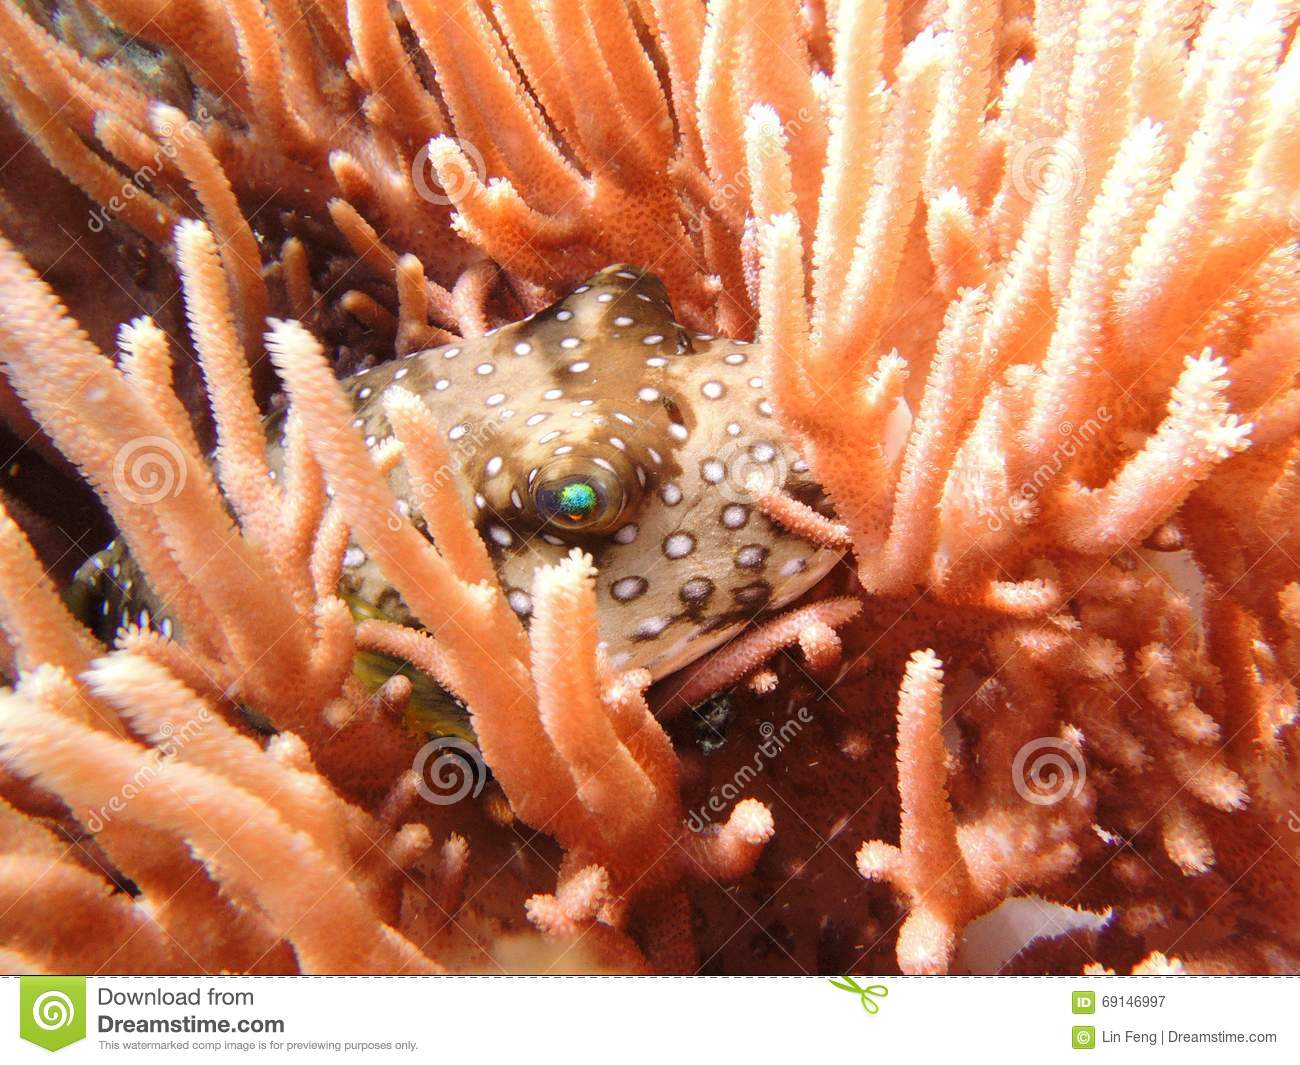 A globefish hiding in the coral